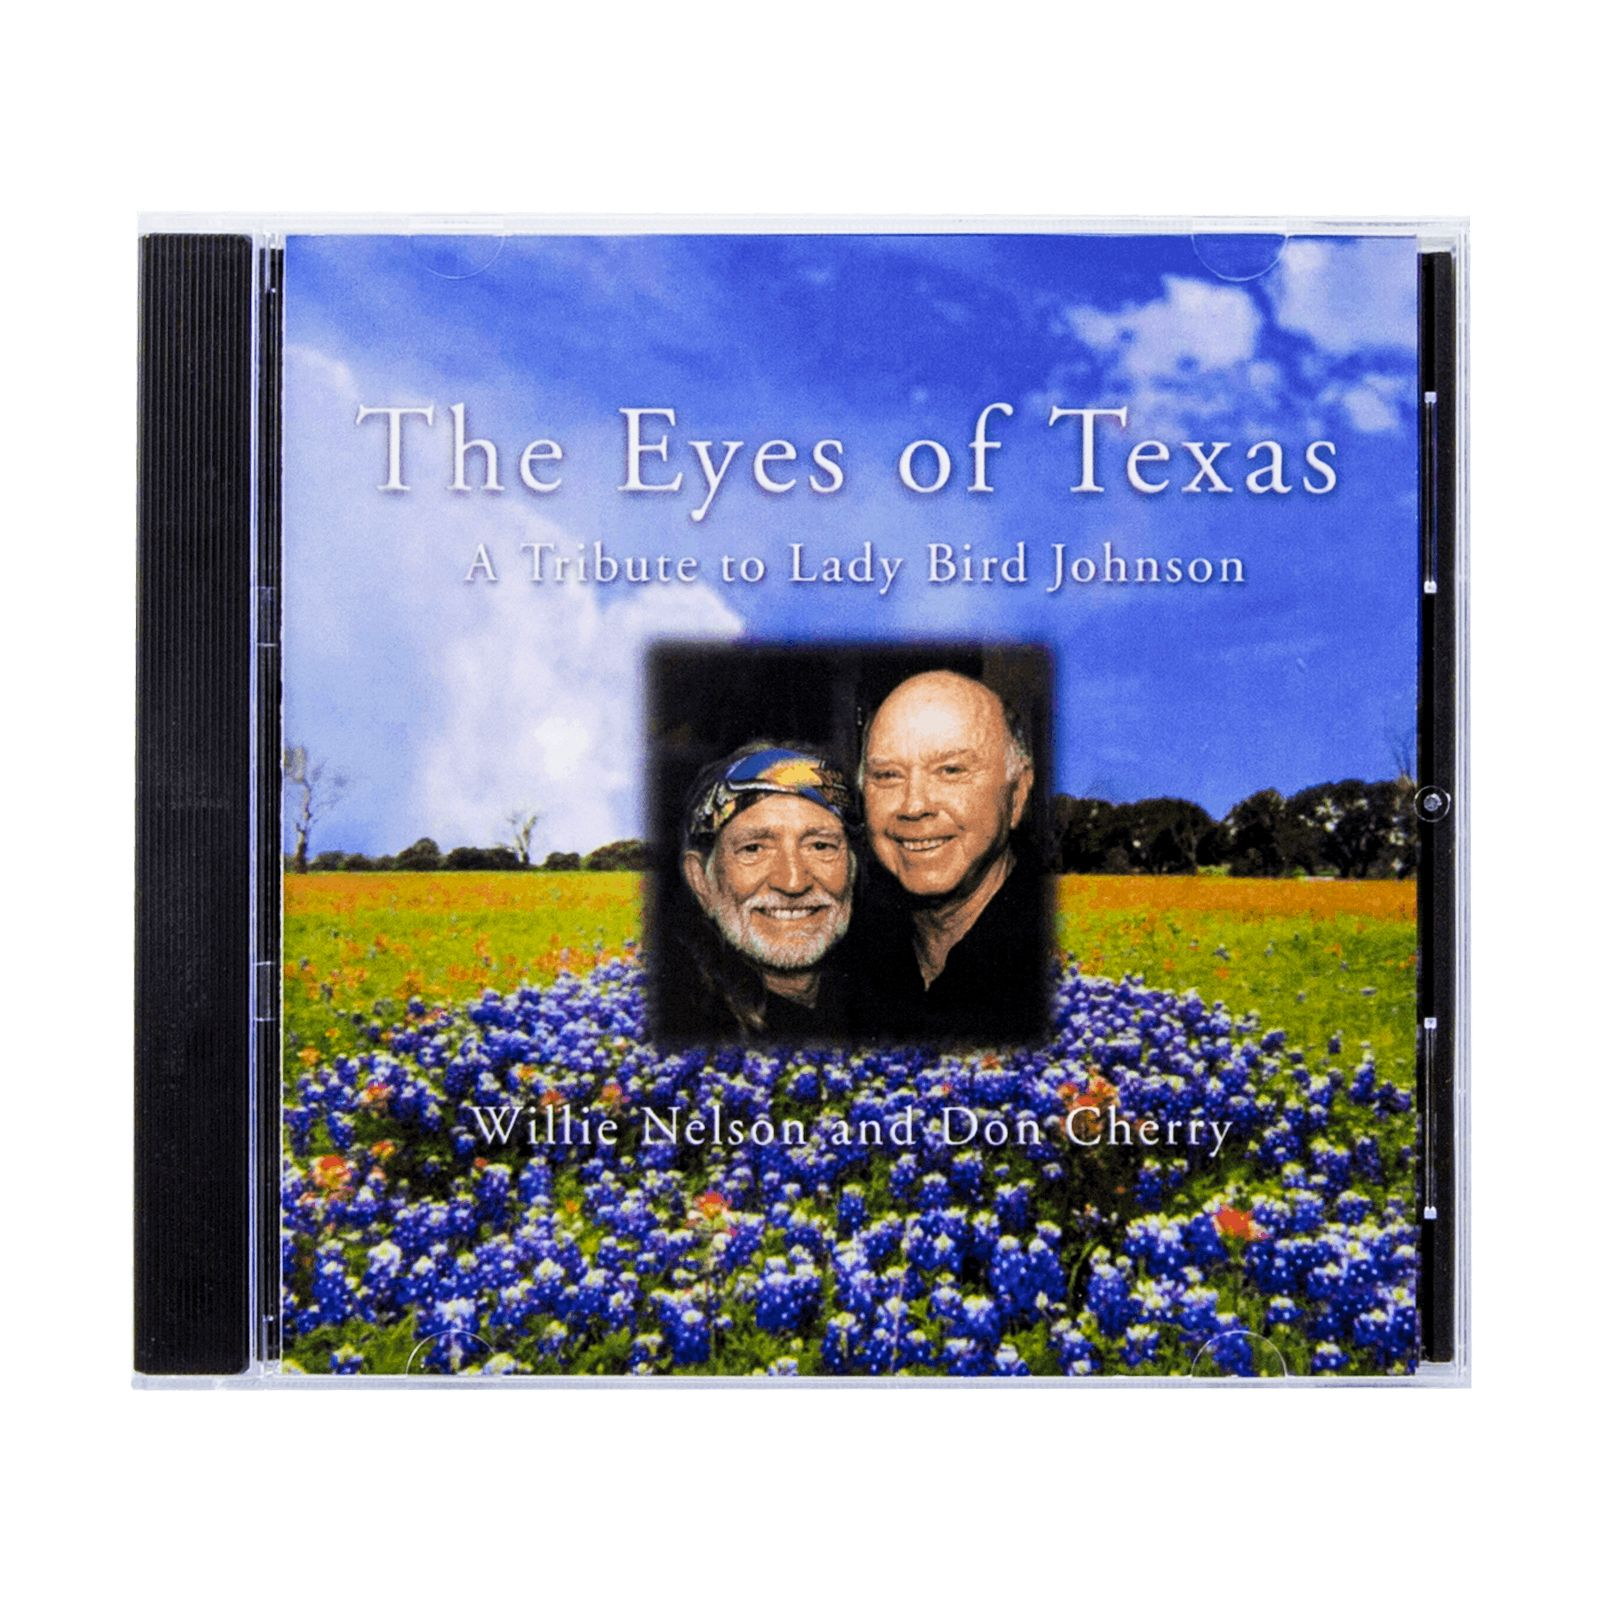 The Eyes of Texas CD